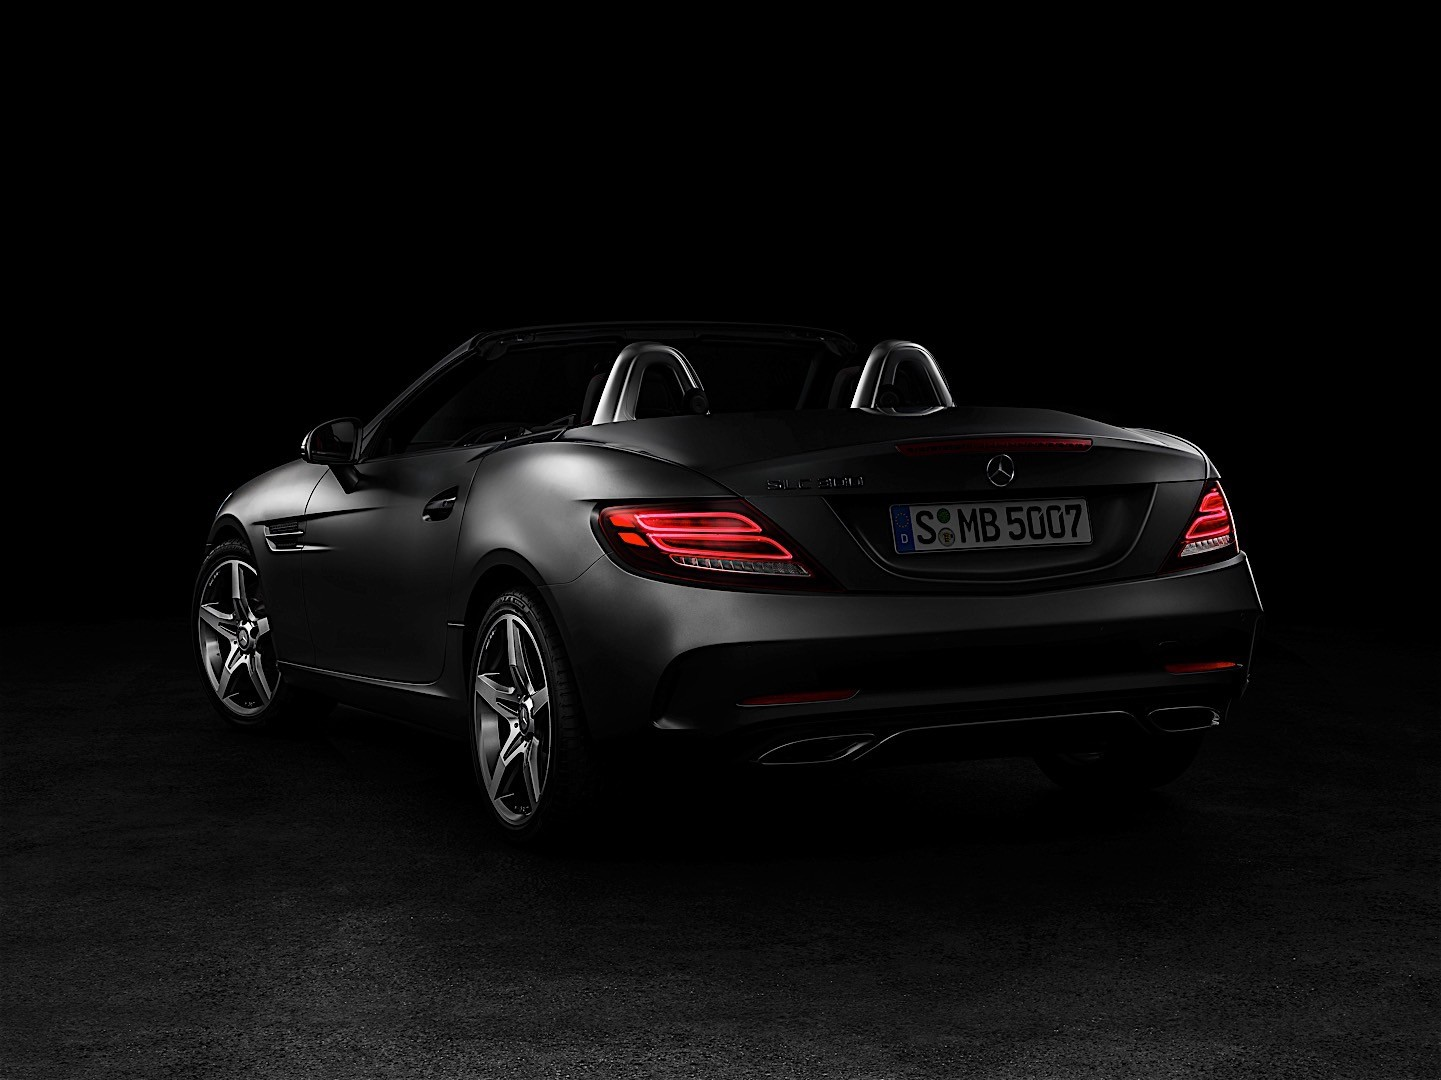 https://s1.cdn.autoevolution.com/images/news/gallery/2017-mercedes-amg-slc-43-sights-and-sounds_1.jpg